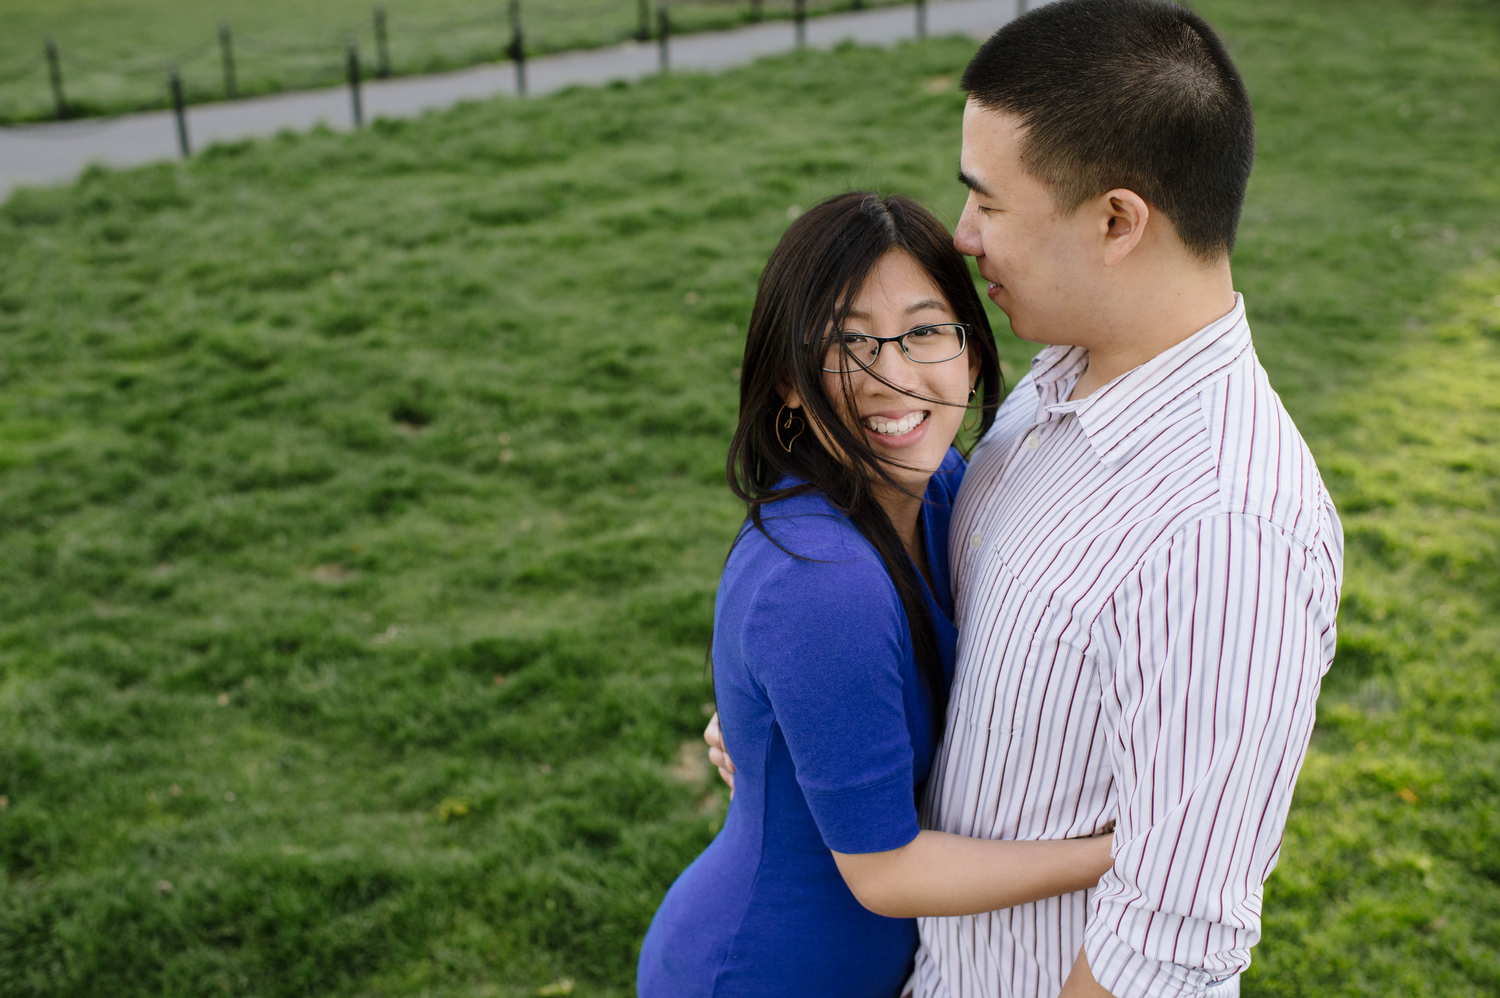 Josephine + Kevin at their engagement Shoot, Boston Common